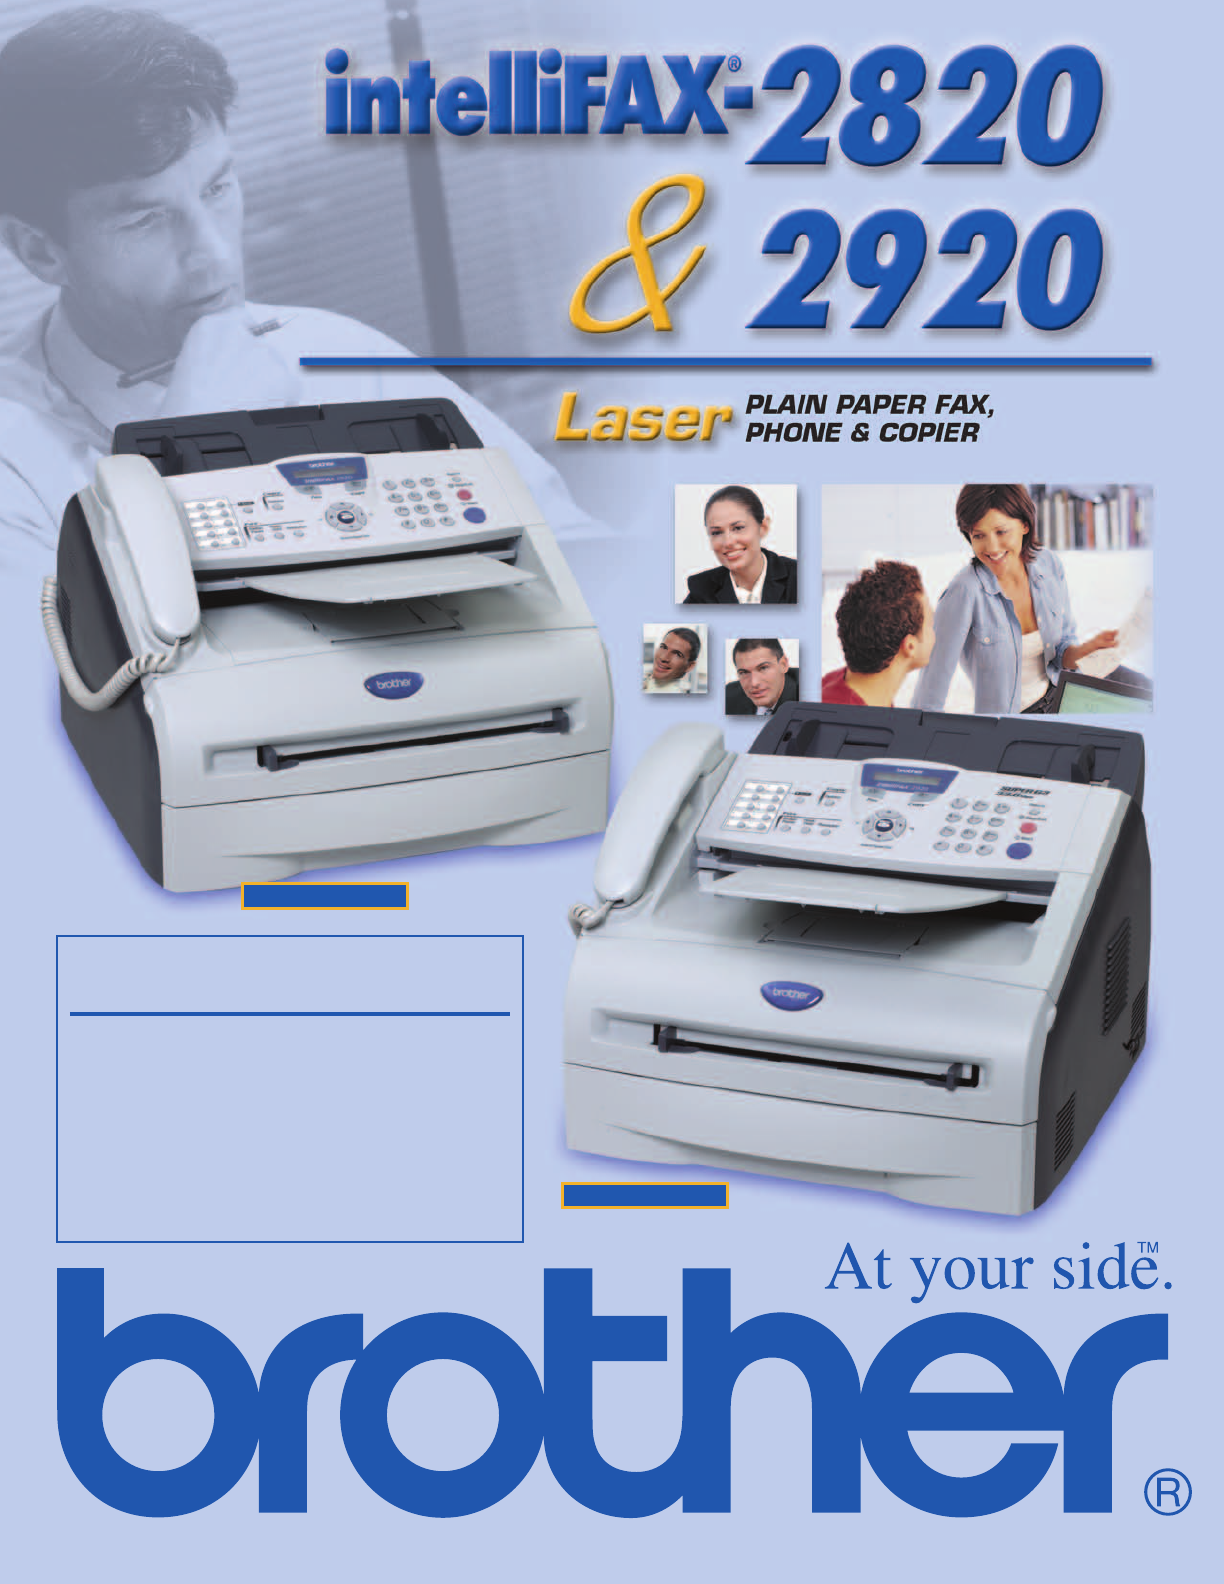 brother fax machine 2820 user guide manualsonline com rh office manualsonline com Brother 2820 Back brother intellifax 2820 user manual pdf